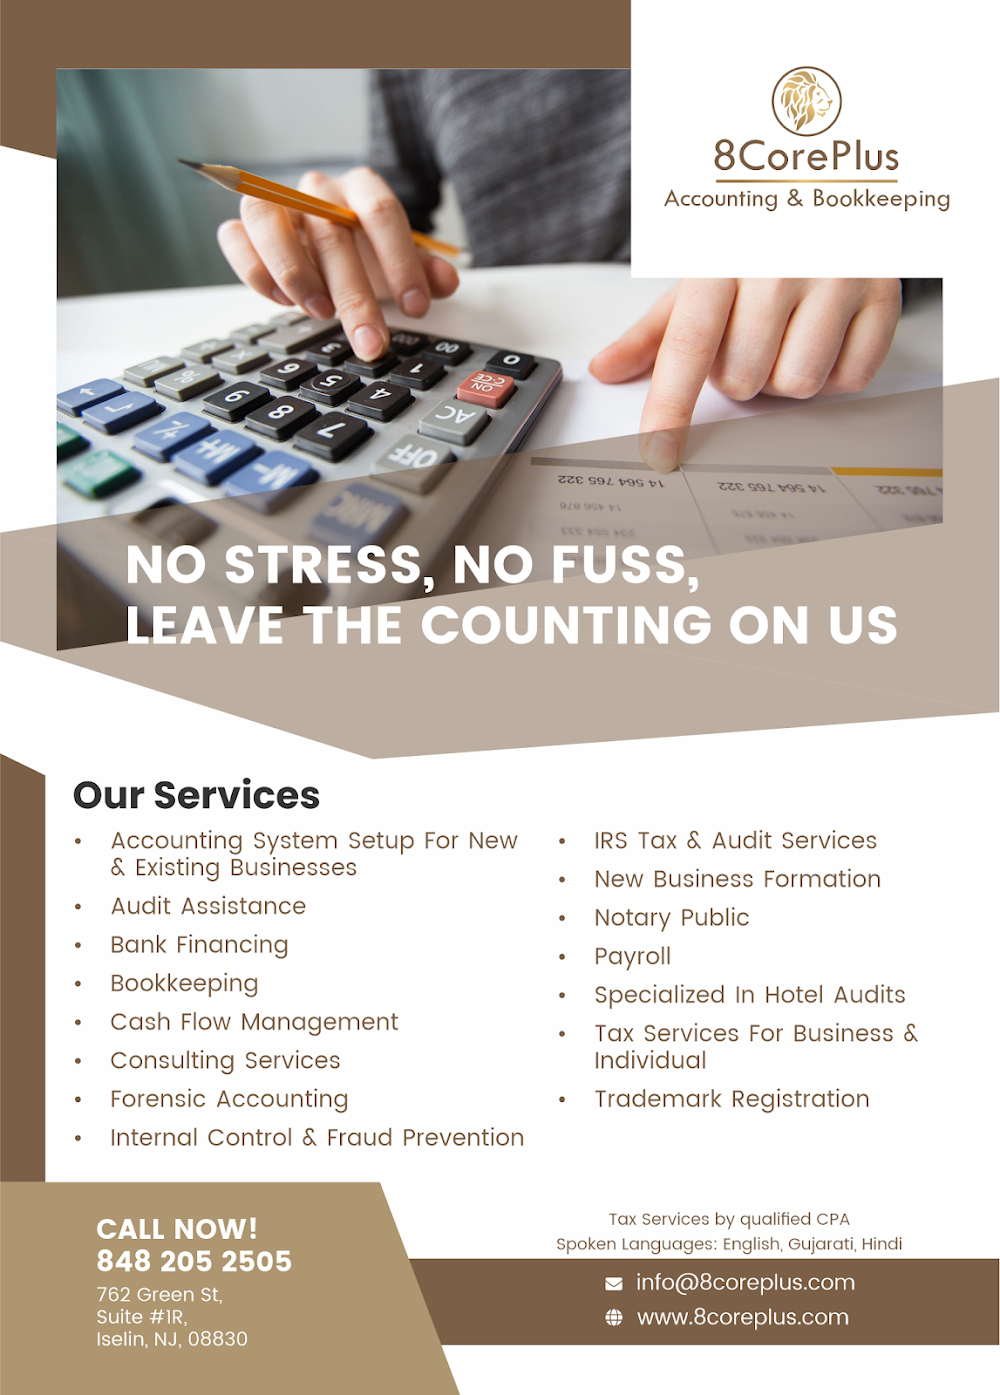 8CorePlus Accounting & Bookkeeping